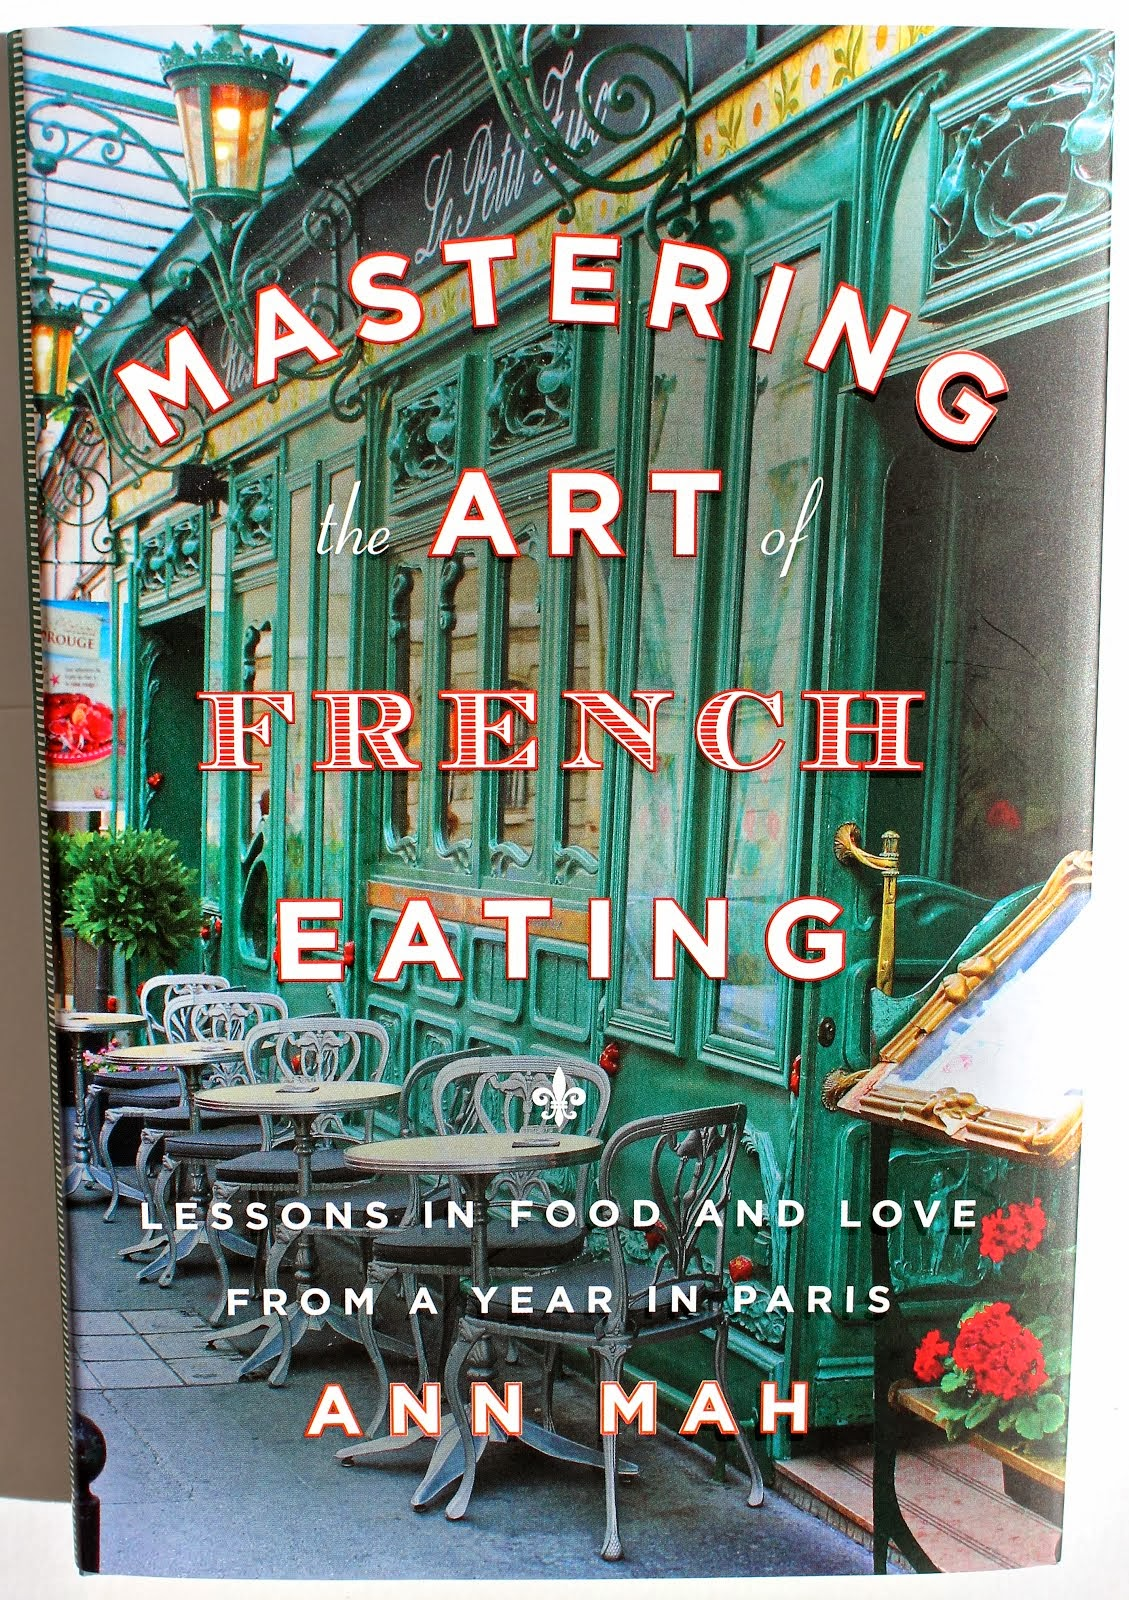 COVER PHOTO, MASTERING THE ART OF FRENCH EATING, ANN MAH (HARDCOVER & AUDIO), PENGUIN Sept 2013